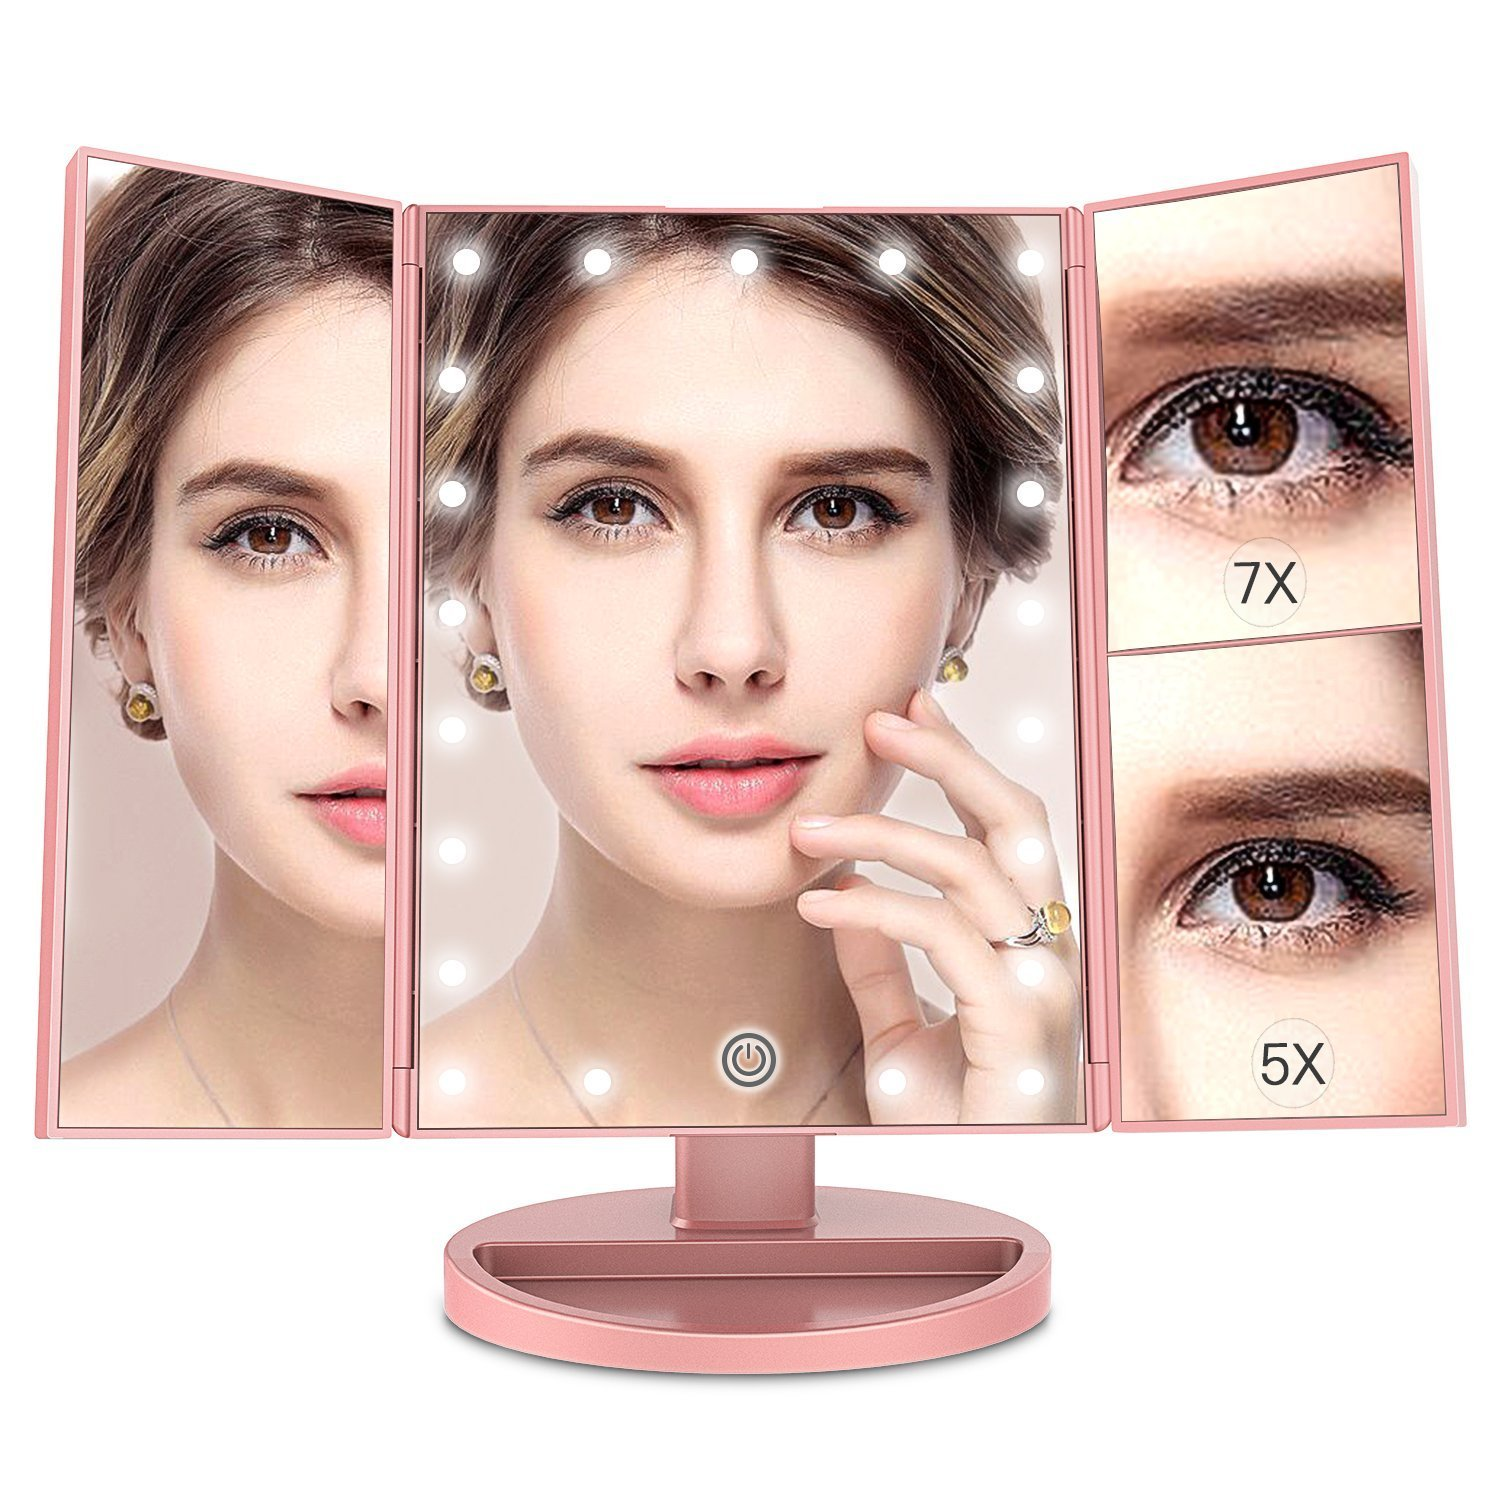 Makeup Mirror with 7X/5X Magnification,Trifold Mirror with 21 LED lights,Touch Screen,180 Degree Adjustable Rotation,Dual Power Supply,Countertop Cosmetic Mirror (rose gold)